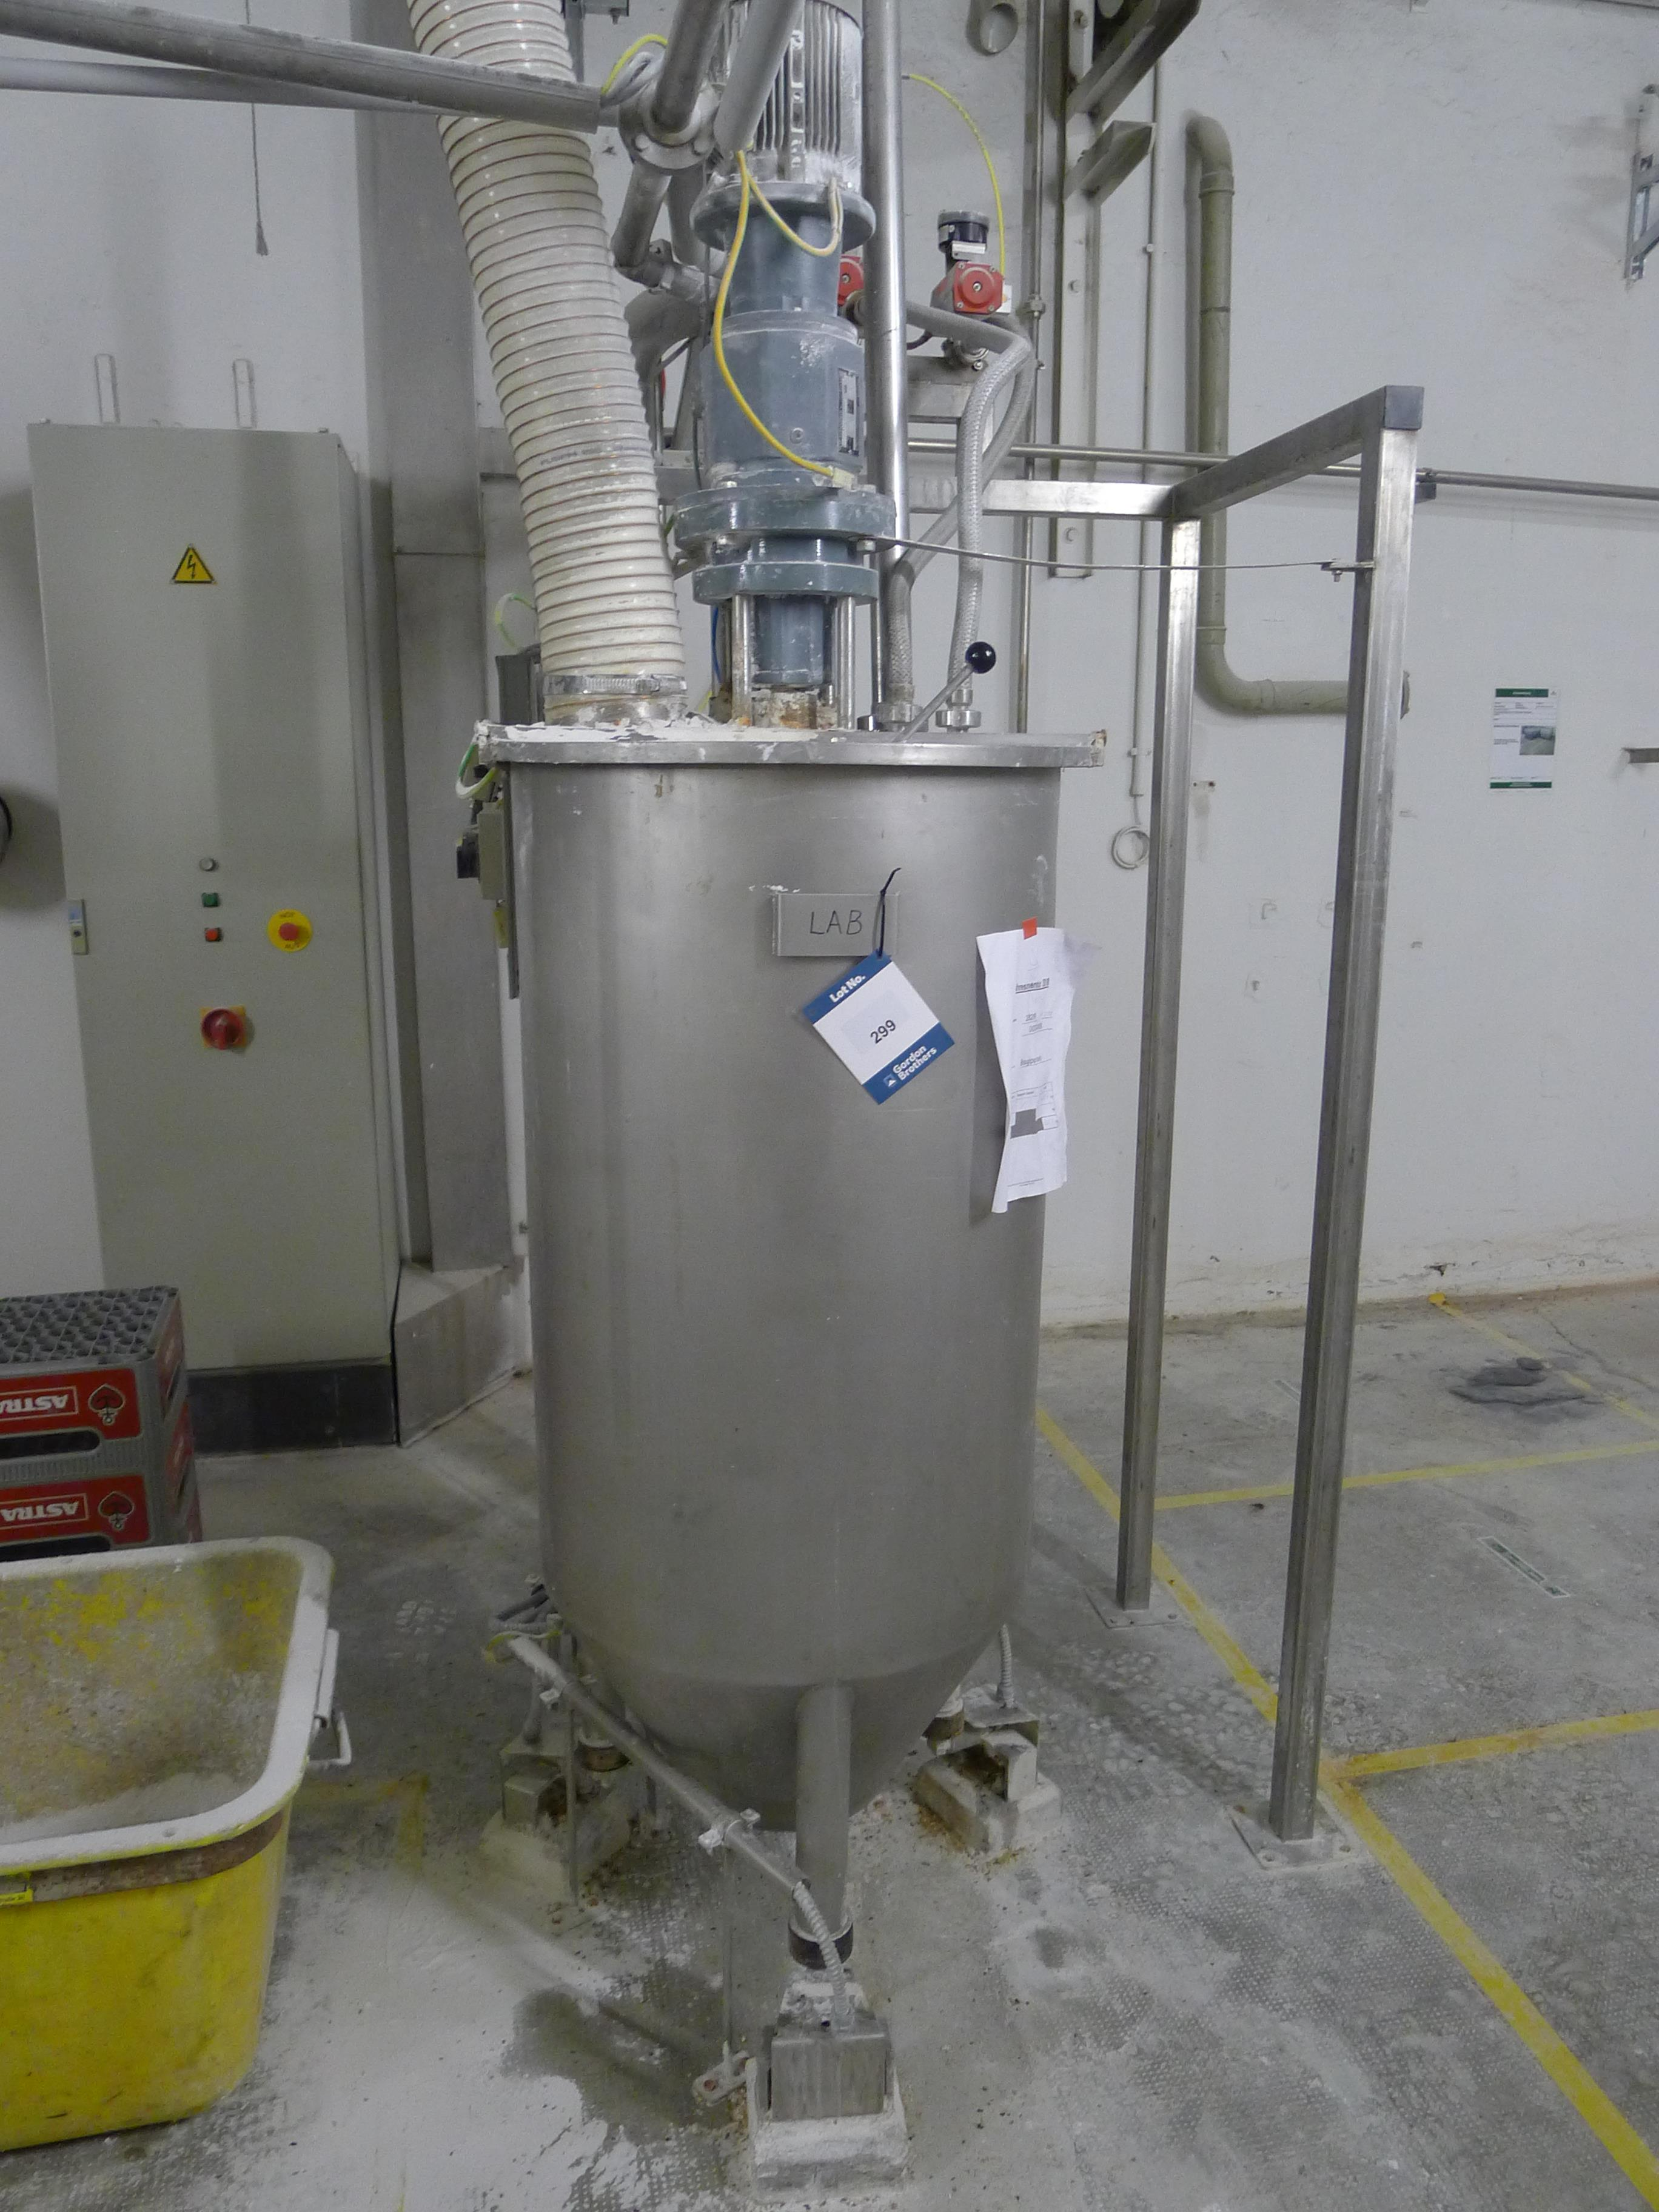 Lot 299 - Gypsum Mixing System (Dismantling and Loading Fee: €450)